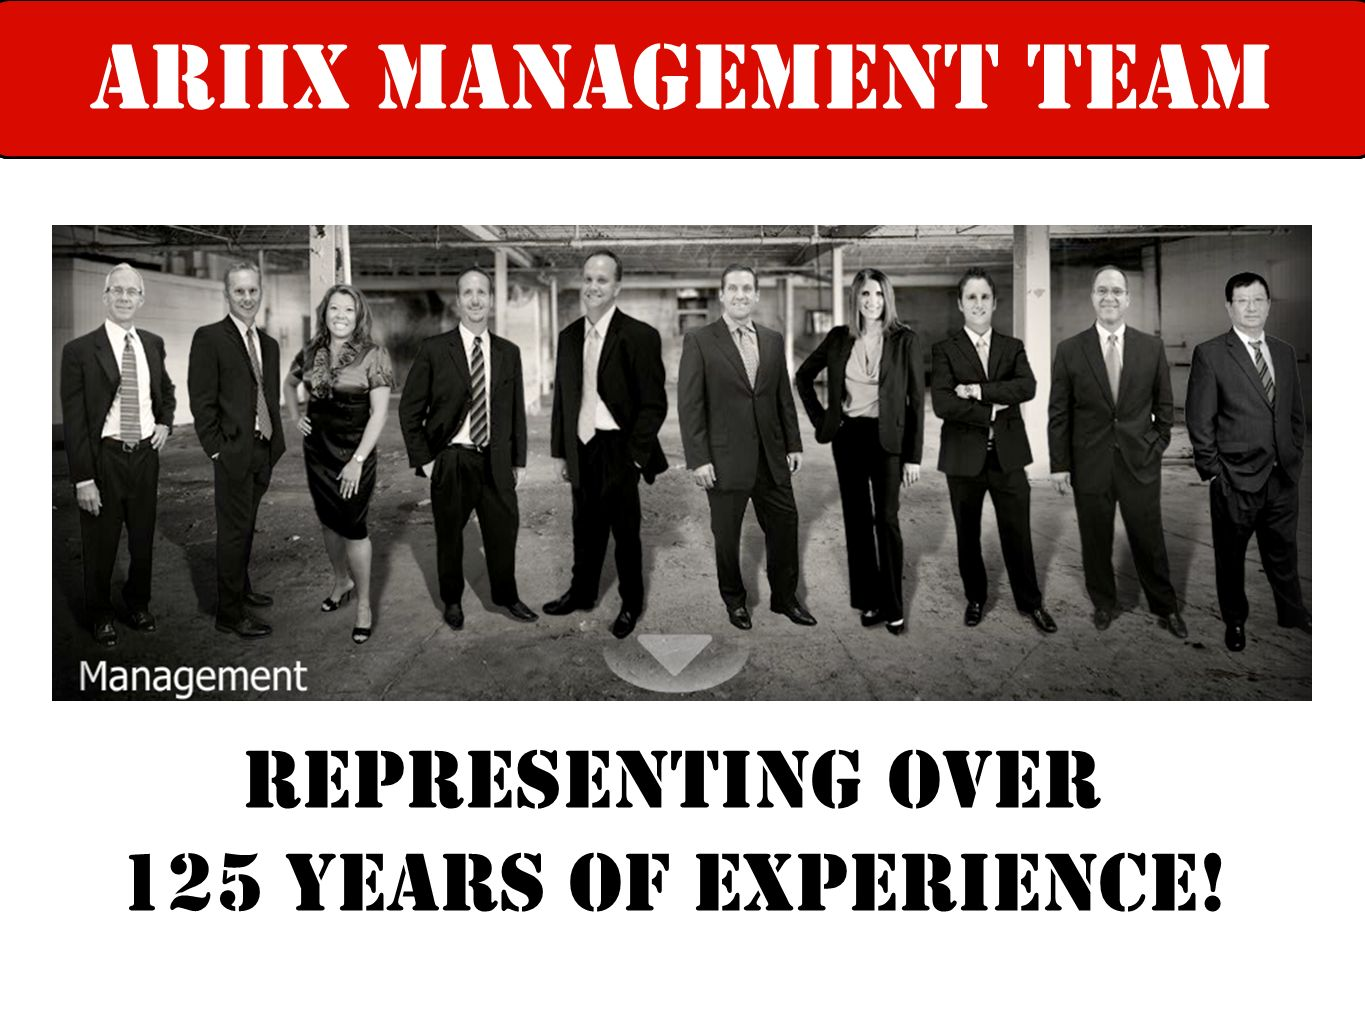 Representing over 125 years of experiencE! ariix leadership teamARIIX Management team